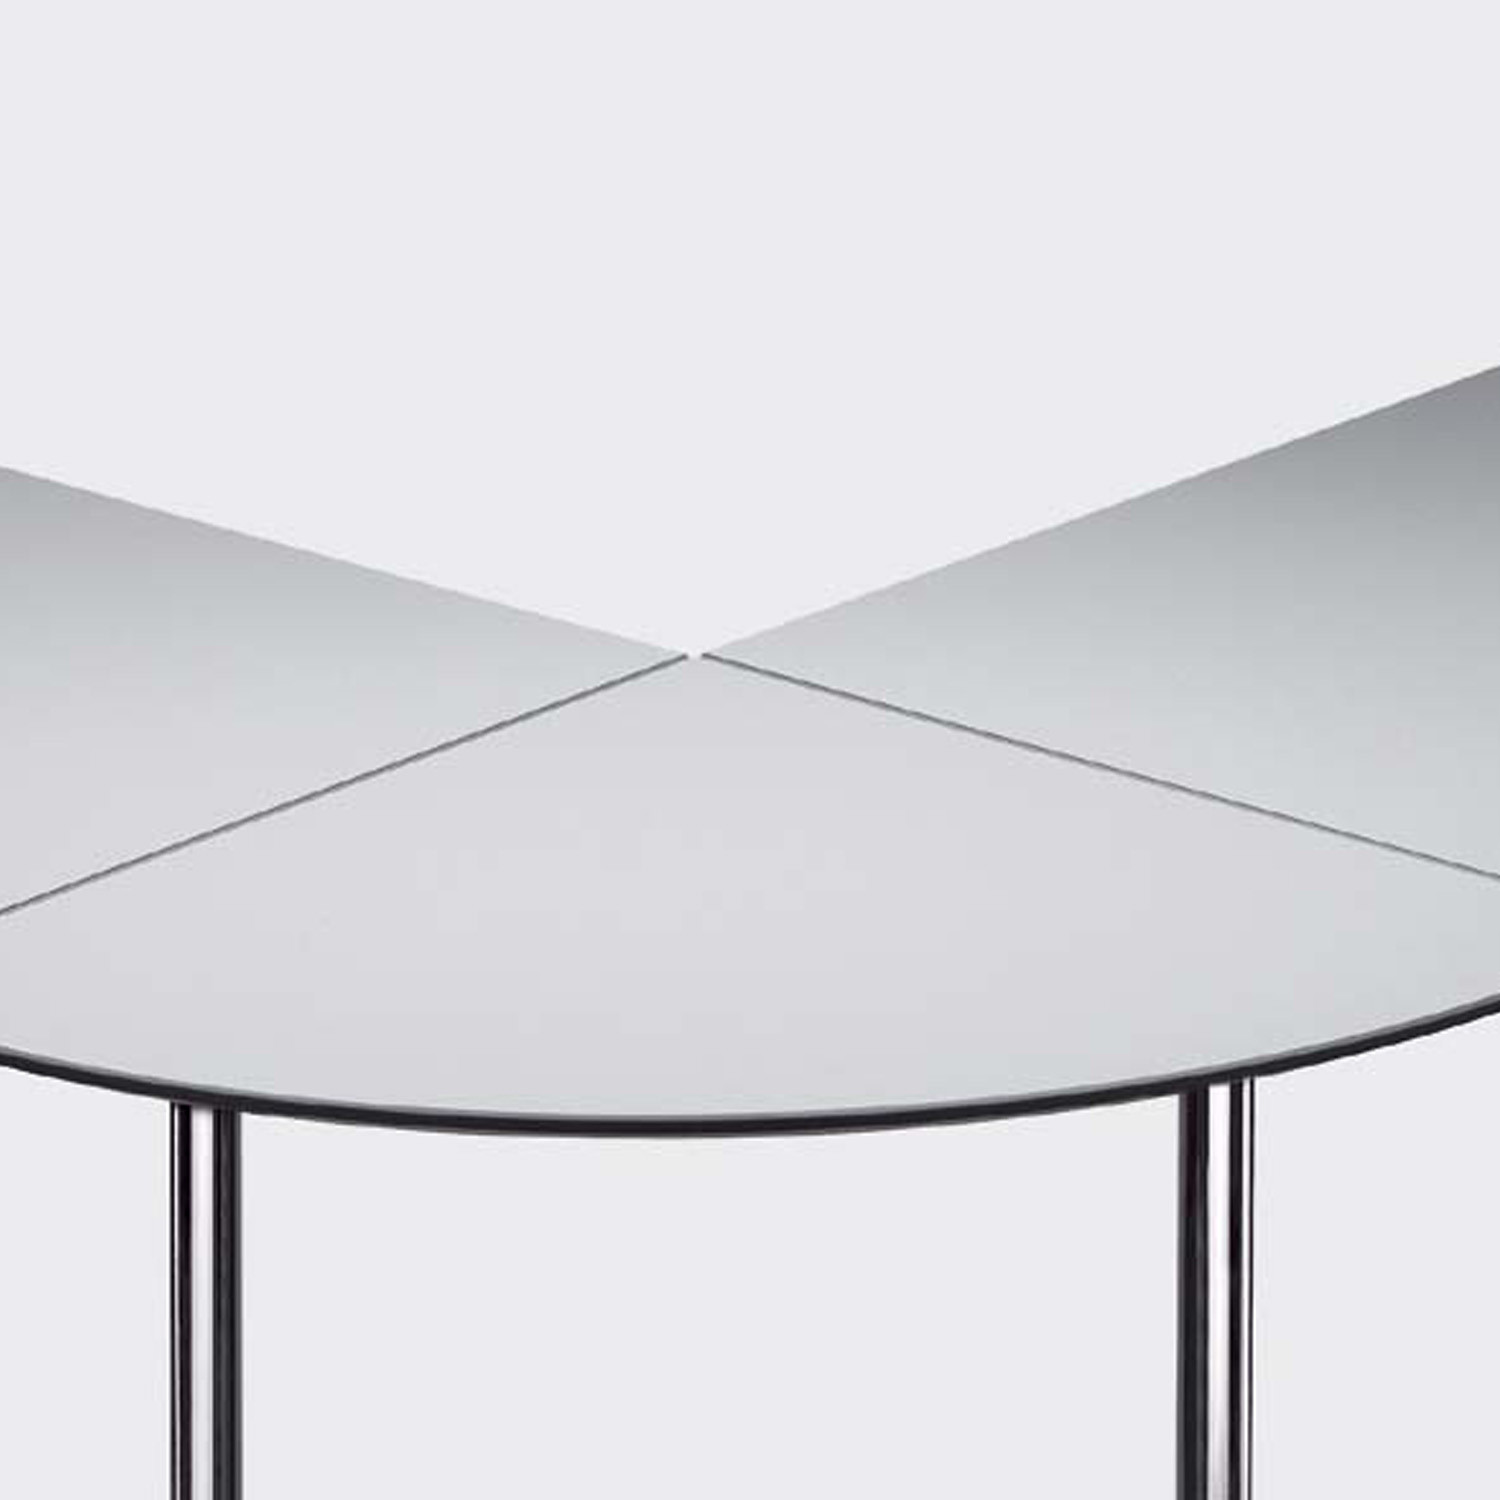 Sleight UltraLight Tables can be linked